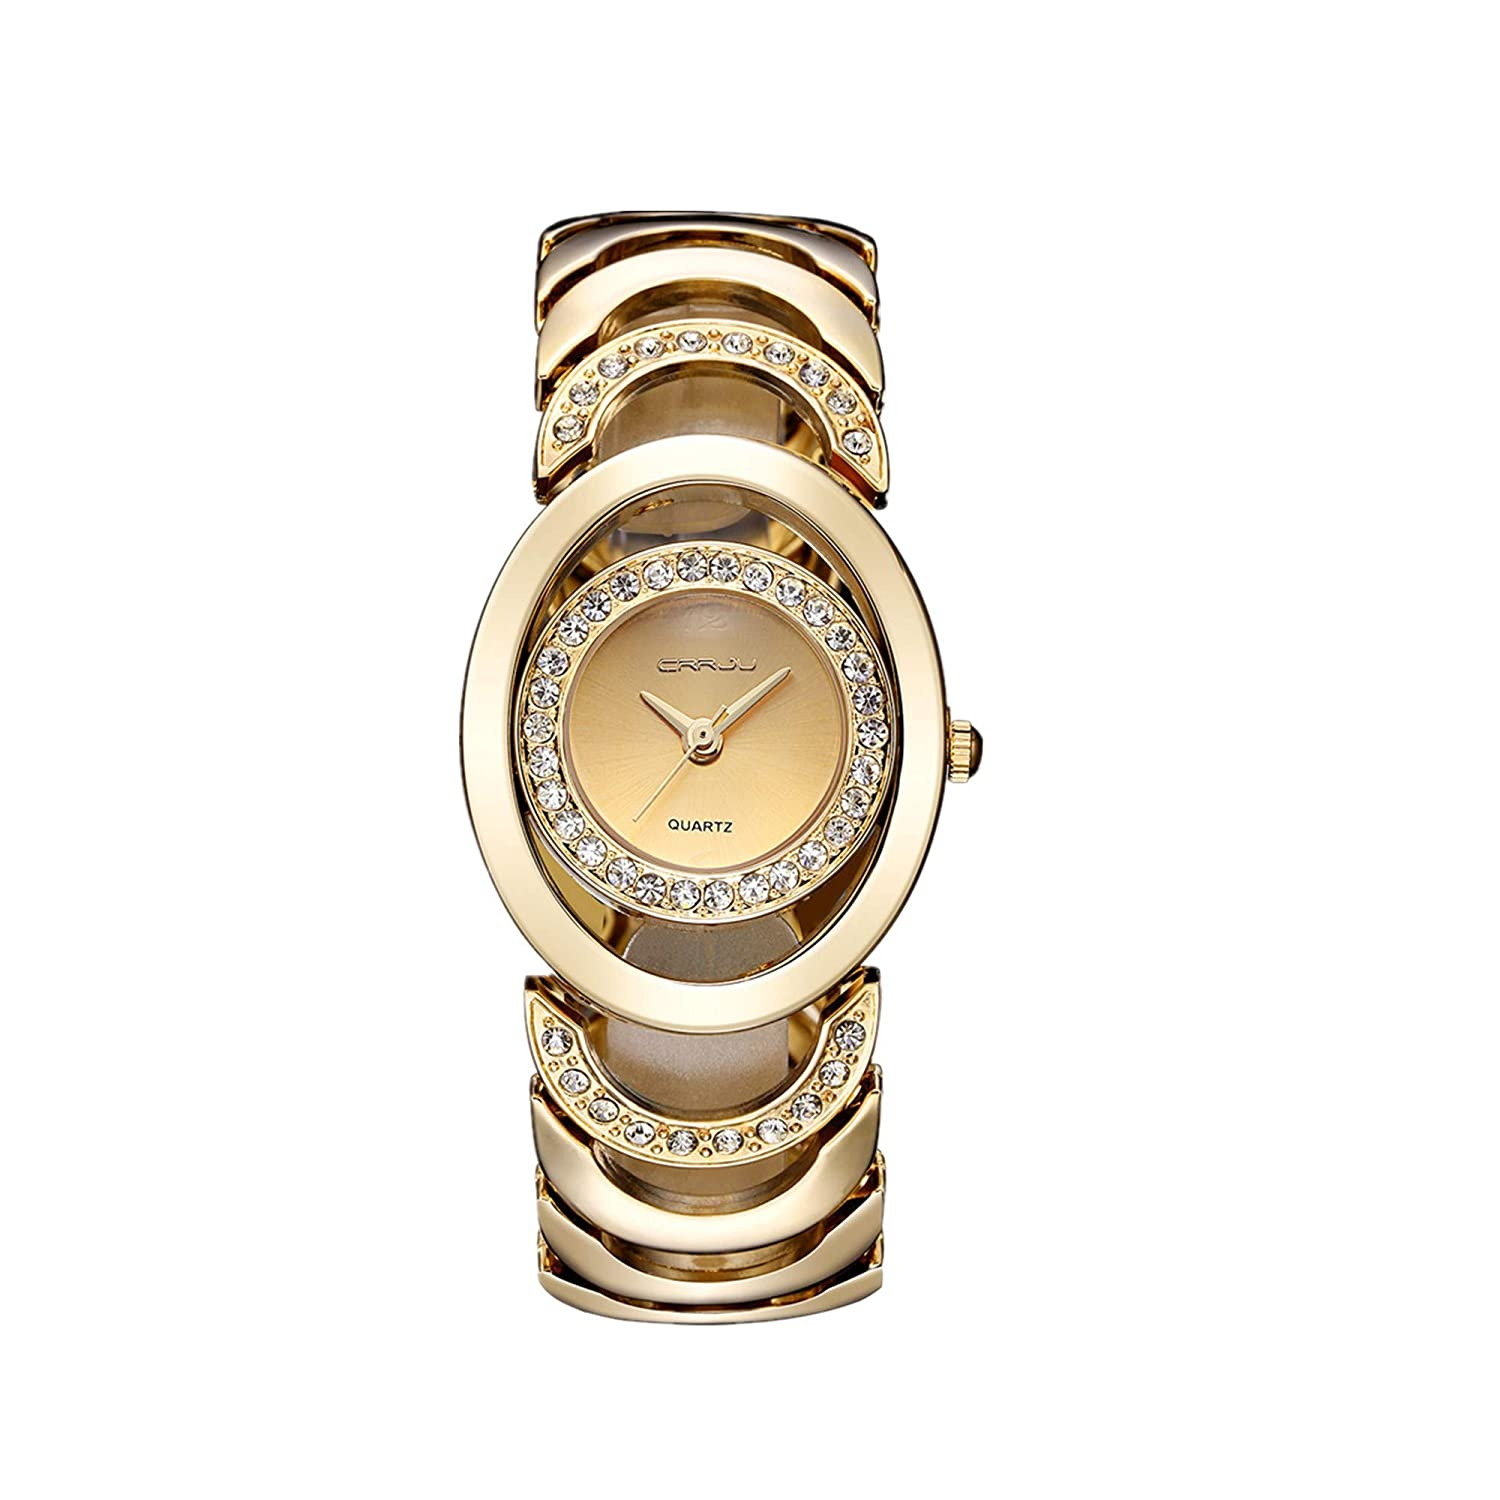 921a0eaef Amazon.com: Women's Watch,Fashion Elegant Luxury Beautiful Lady Watches  Crystal Diamond Dial Thin Quartz Watch Gold with Stainless Steel Band:  Watches